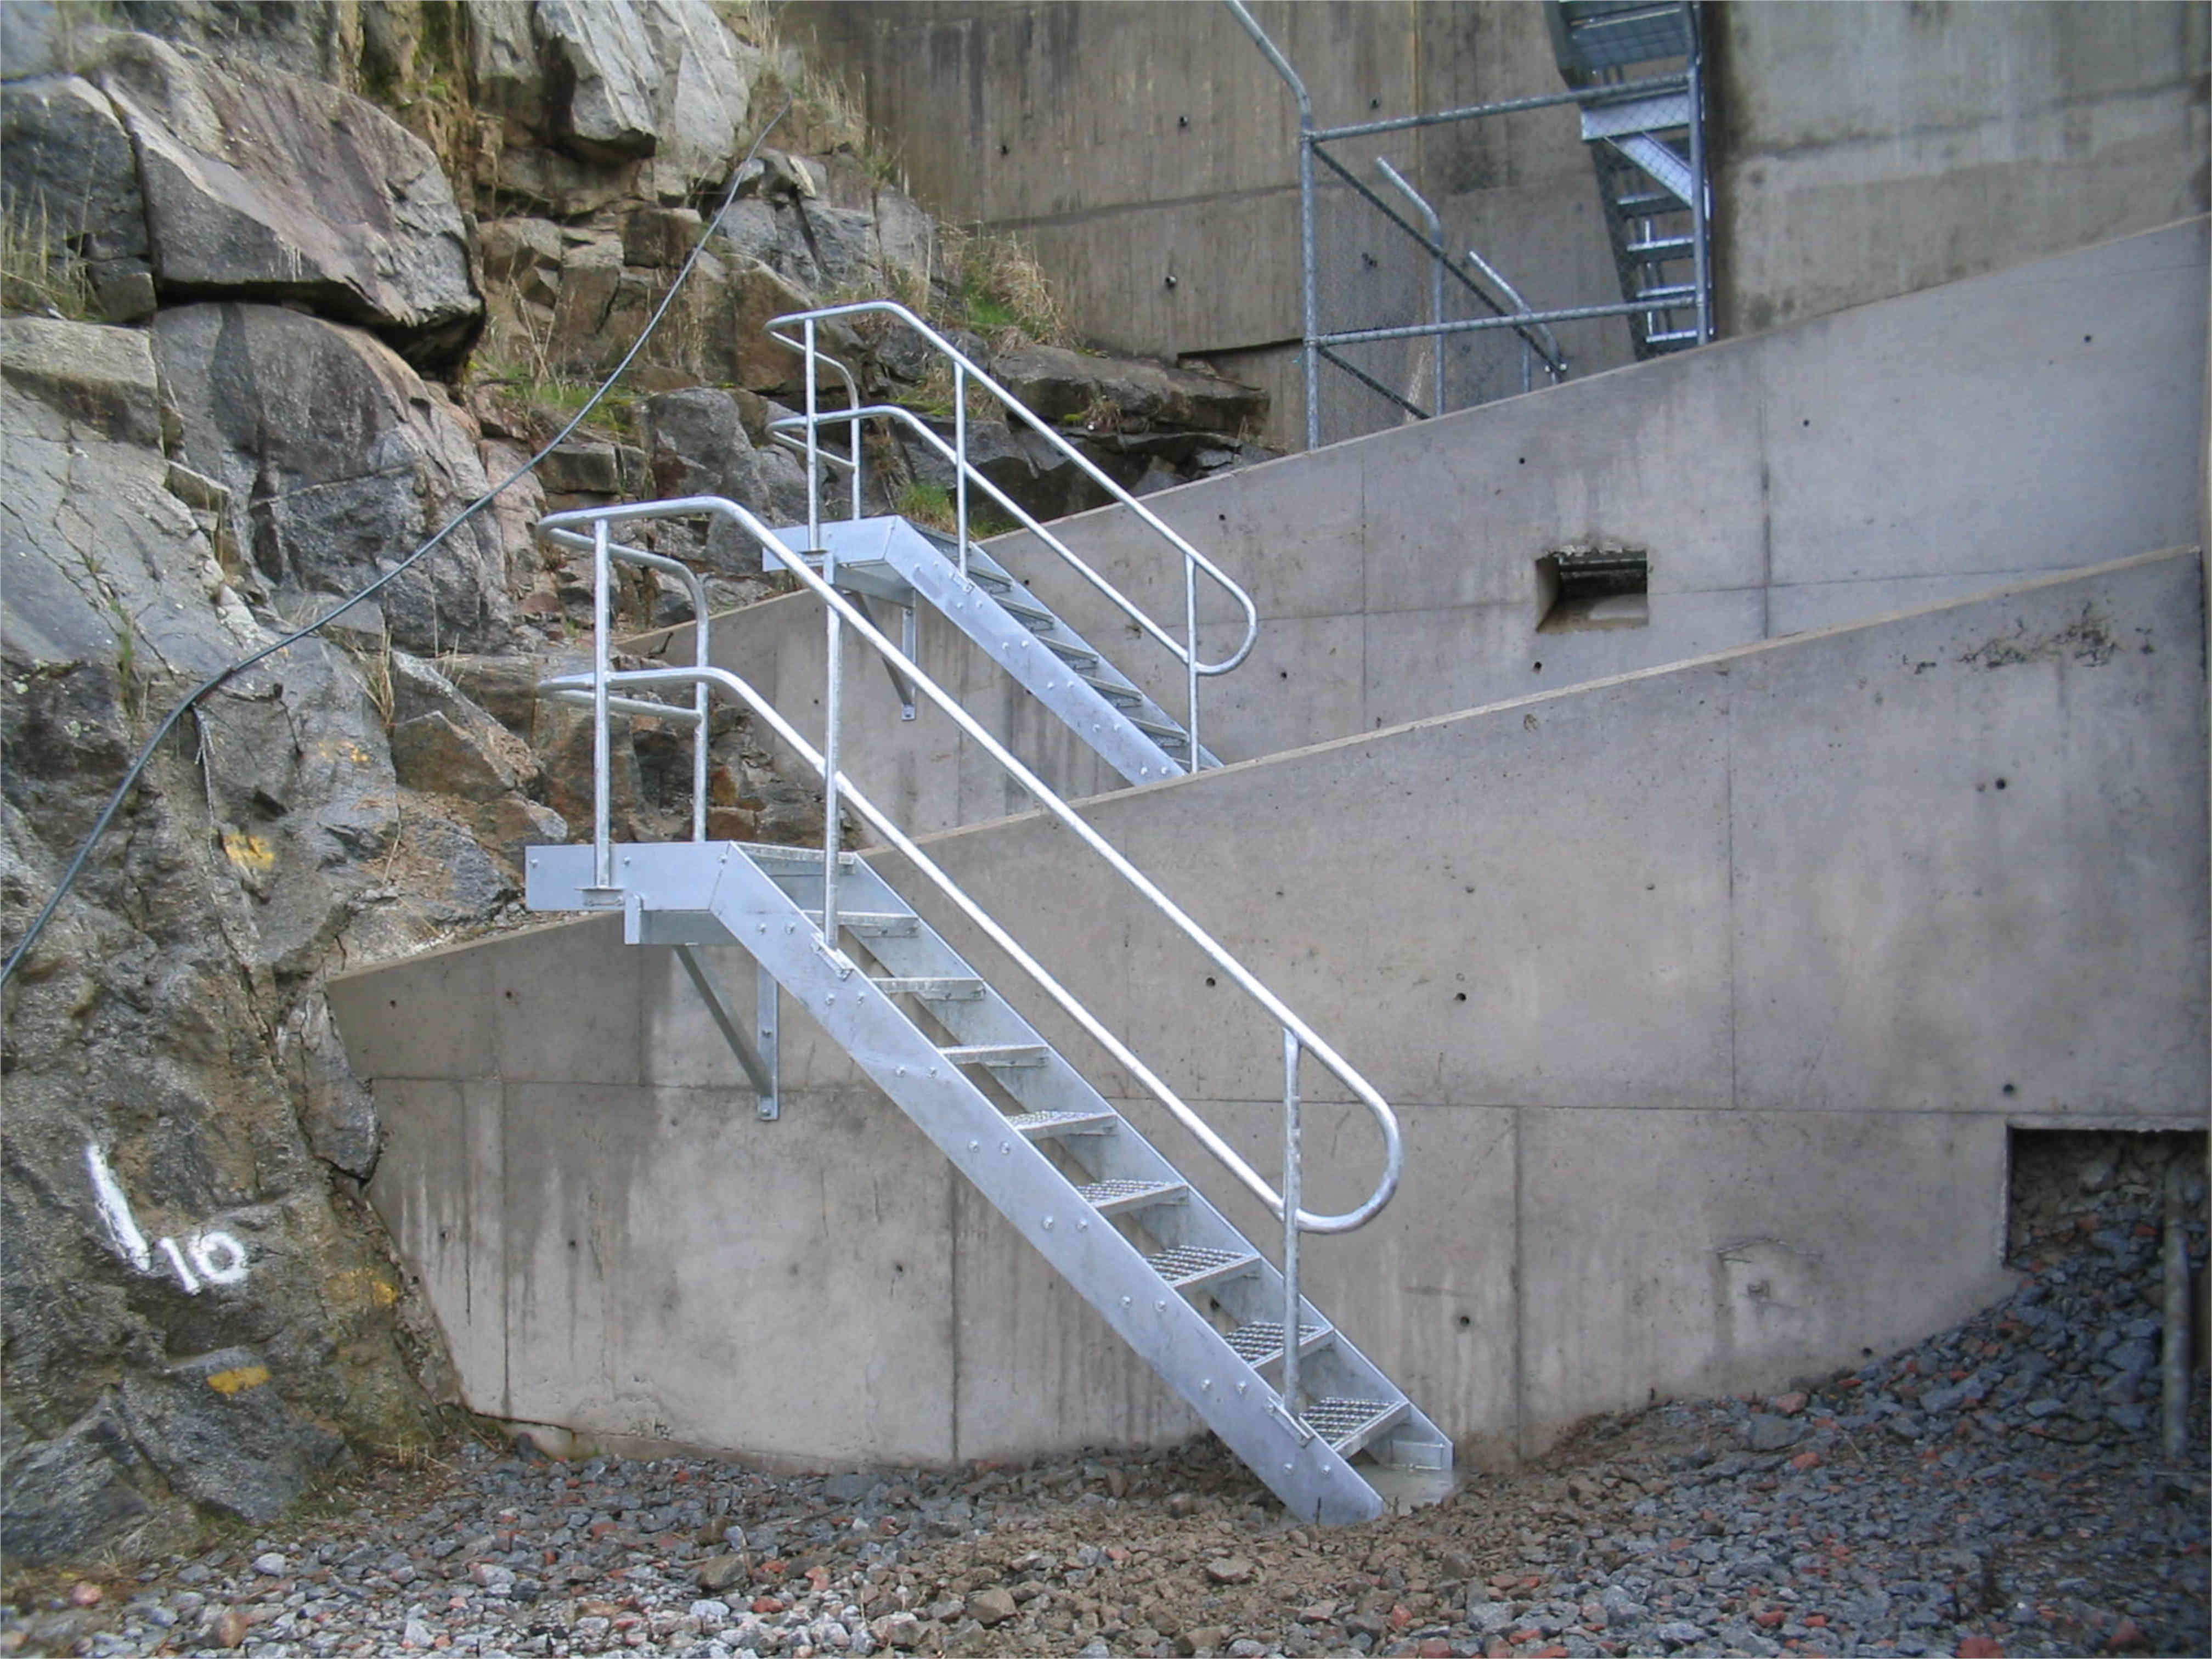 Snowy Hydro Stairs 2006 002